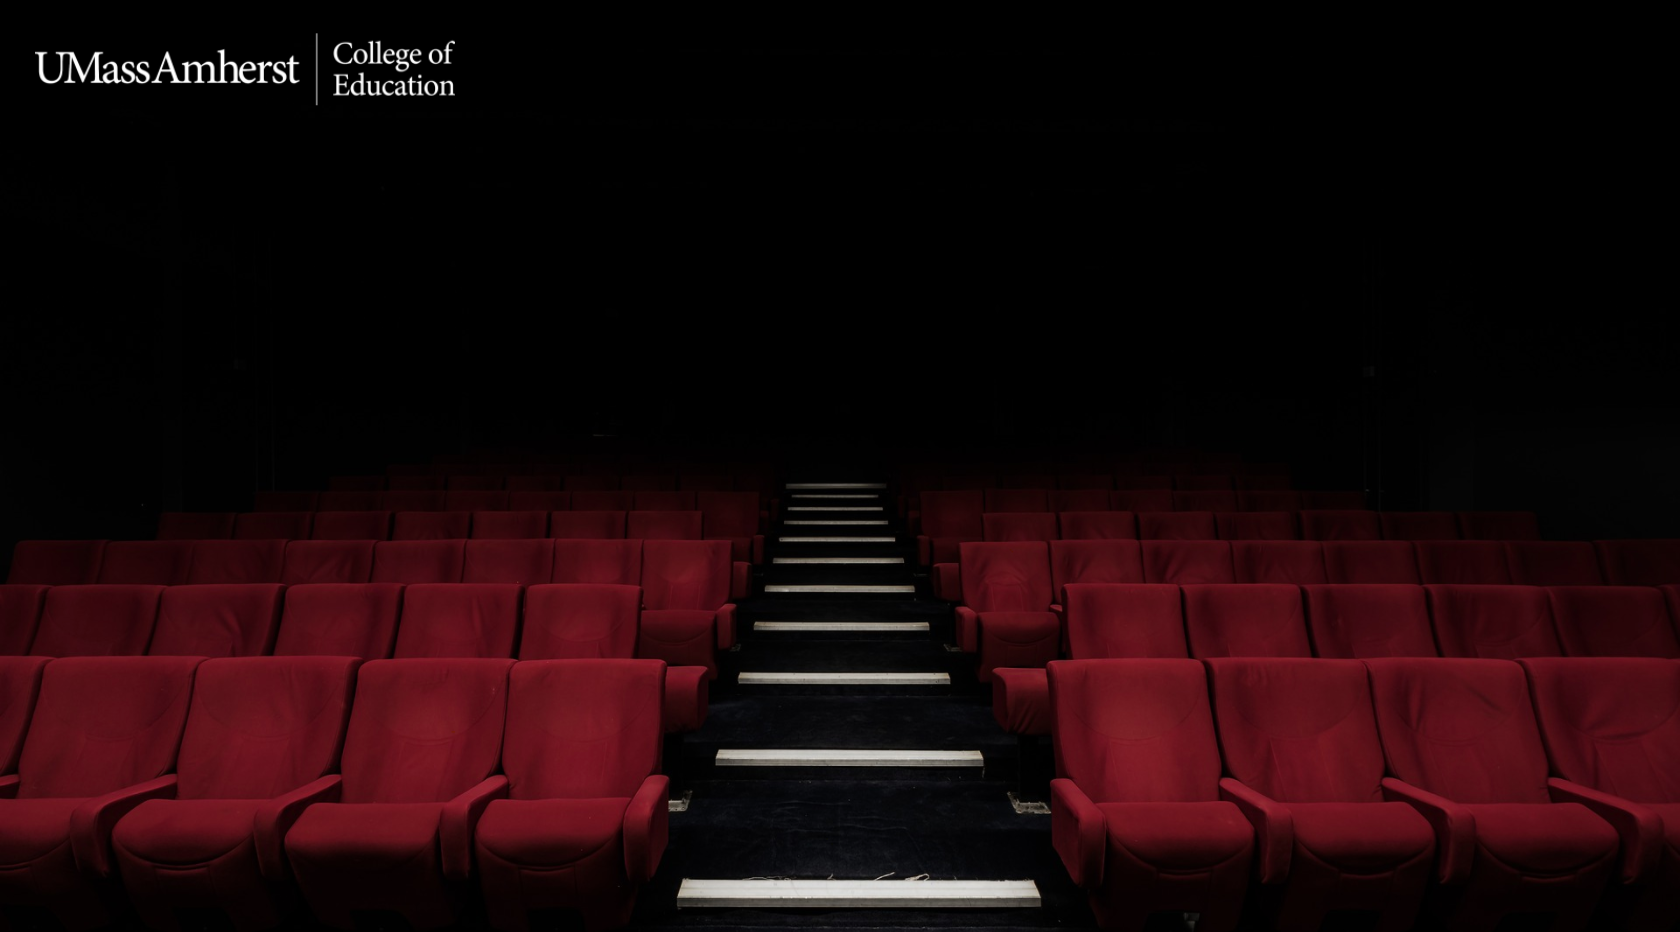 An empty auditorium with the College of Education logo